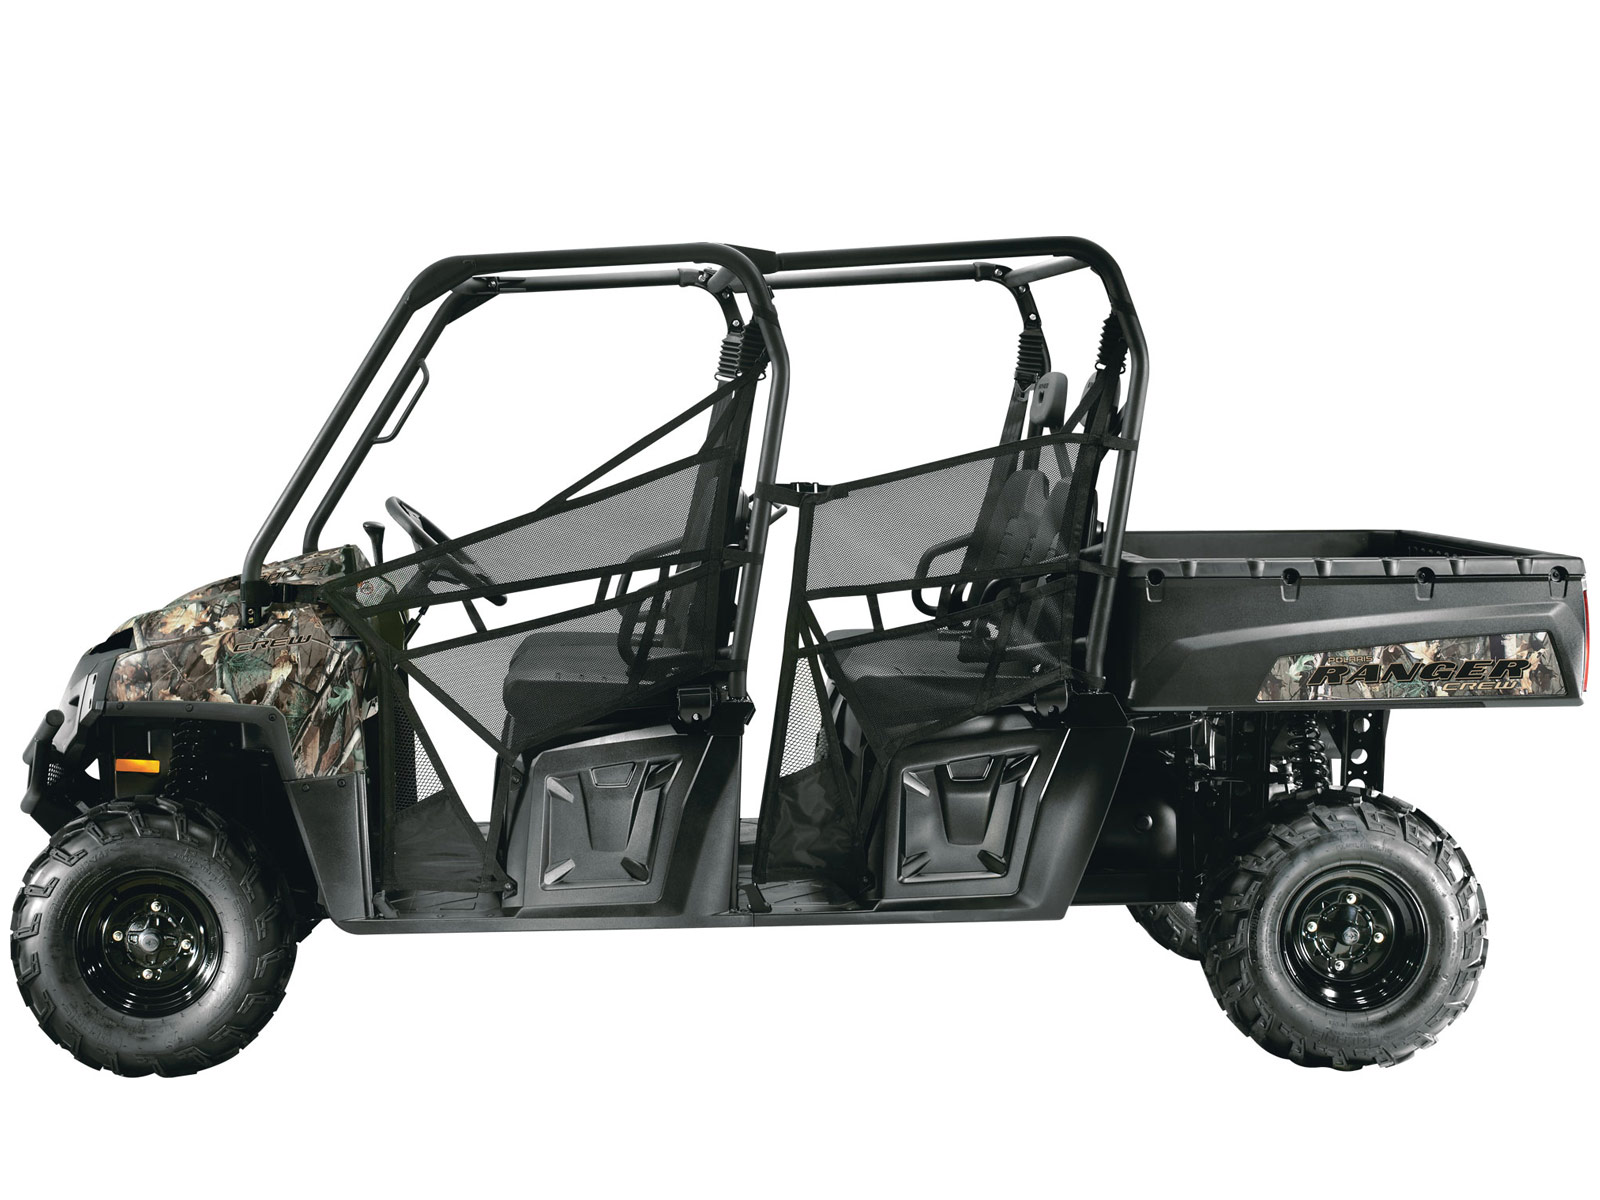 2015 Polaris Ranger Crew 500 Car Interior Design